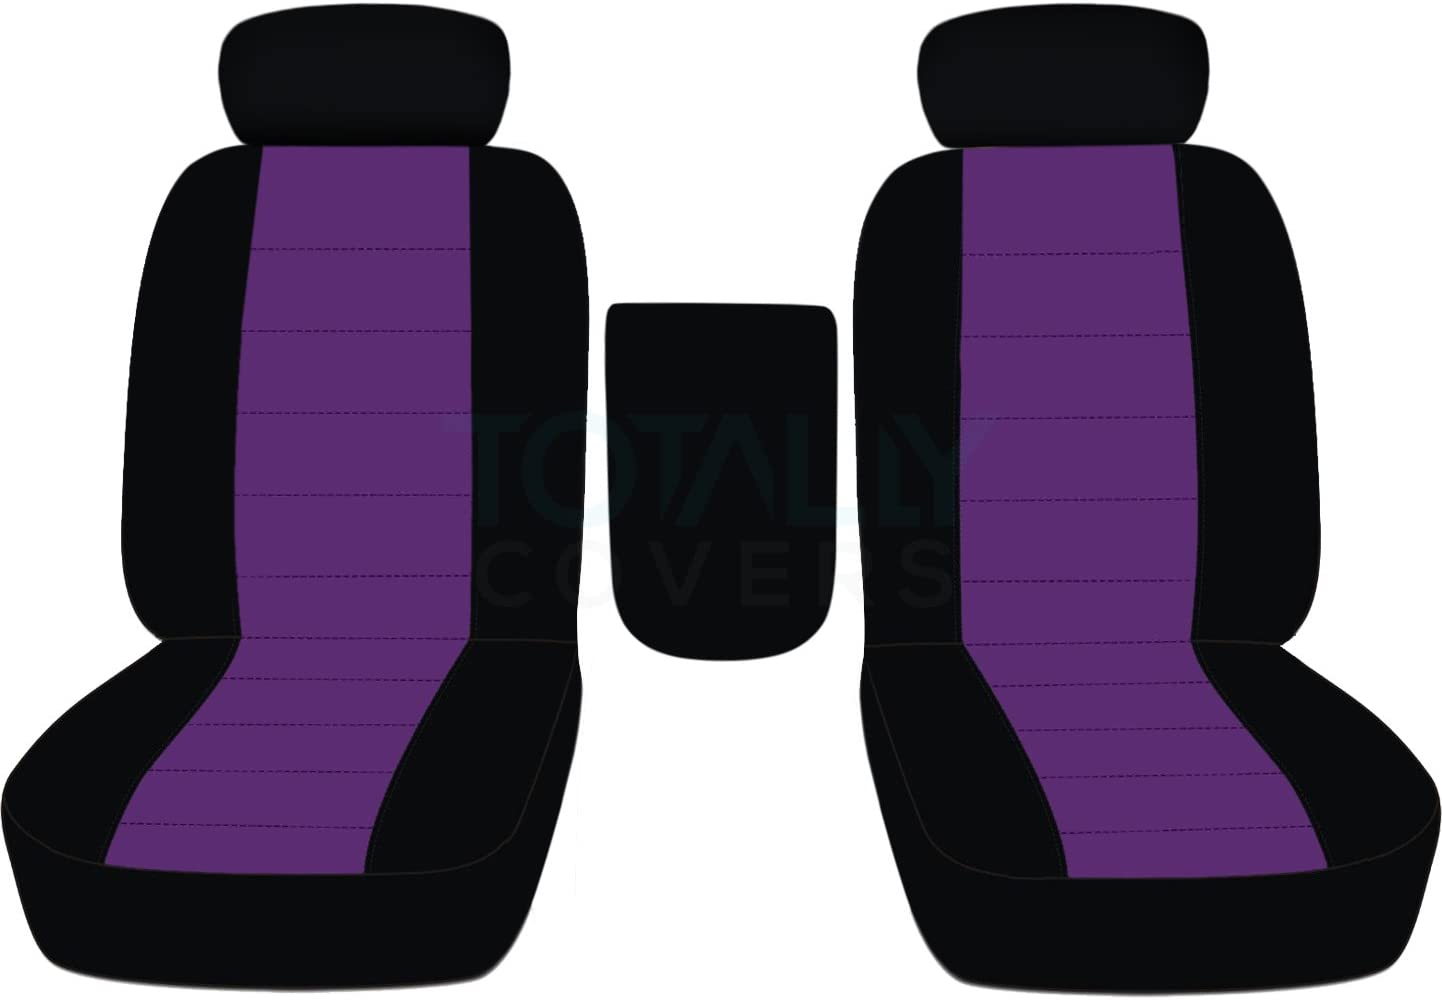 Totally Covers Compatible with 2001-2003 Ford F-150 Two-Tone Truck Bucket Seat Covers with Center Armrest, Adjustable Headrests, w/wo Integrated Seat Belts: Black & Purple (21 Colors) F-Series F150